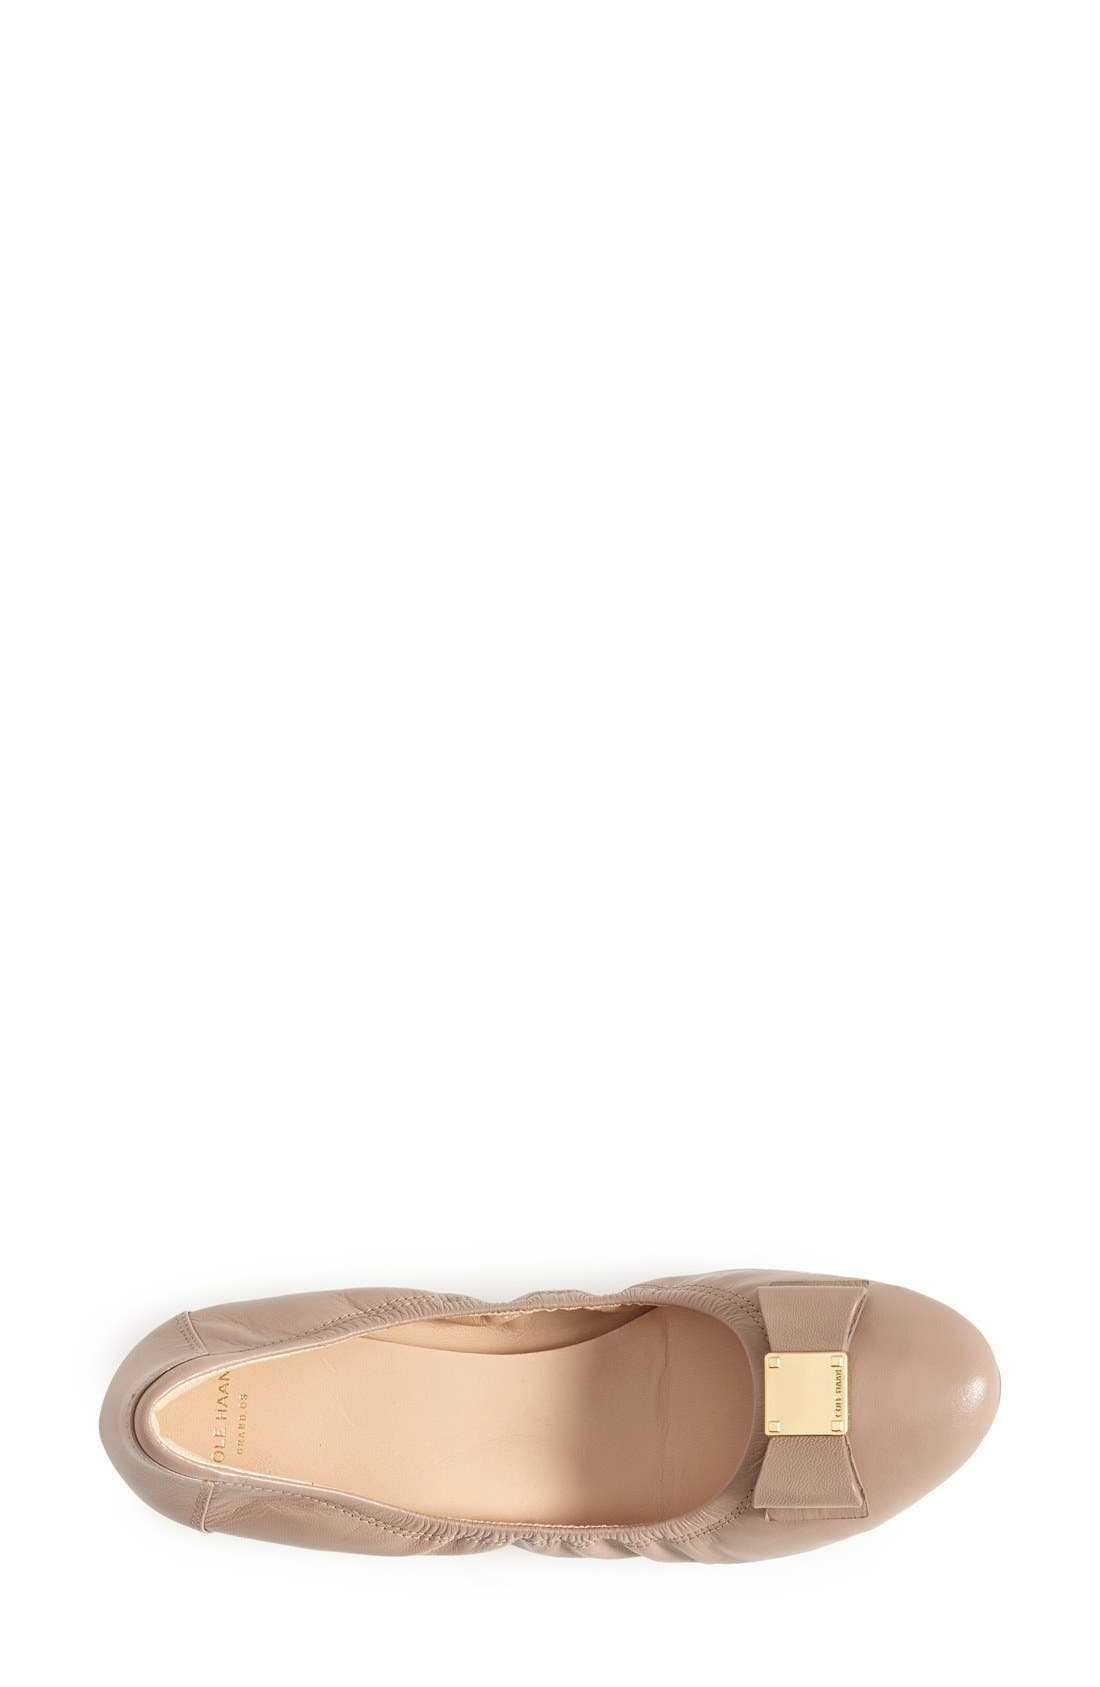 COLE HAAN, 'Tali' Bow Ballet Flat, Alternate thumbnail 3, color, MAPLE SUGAR